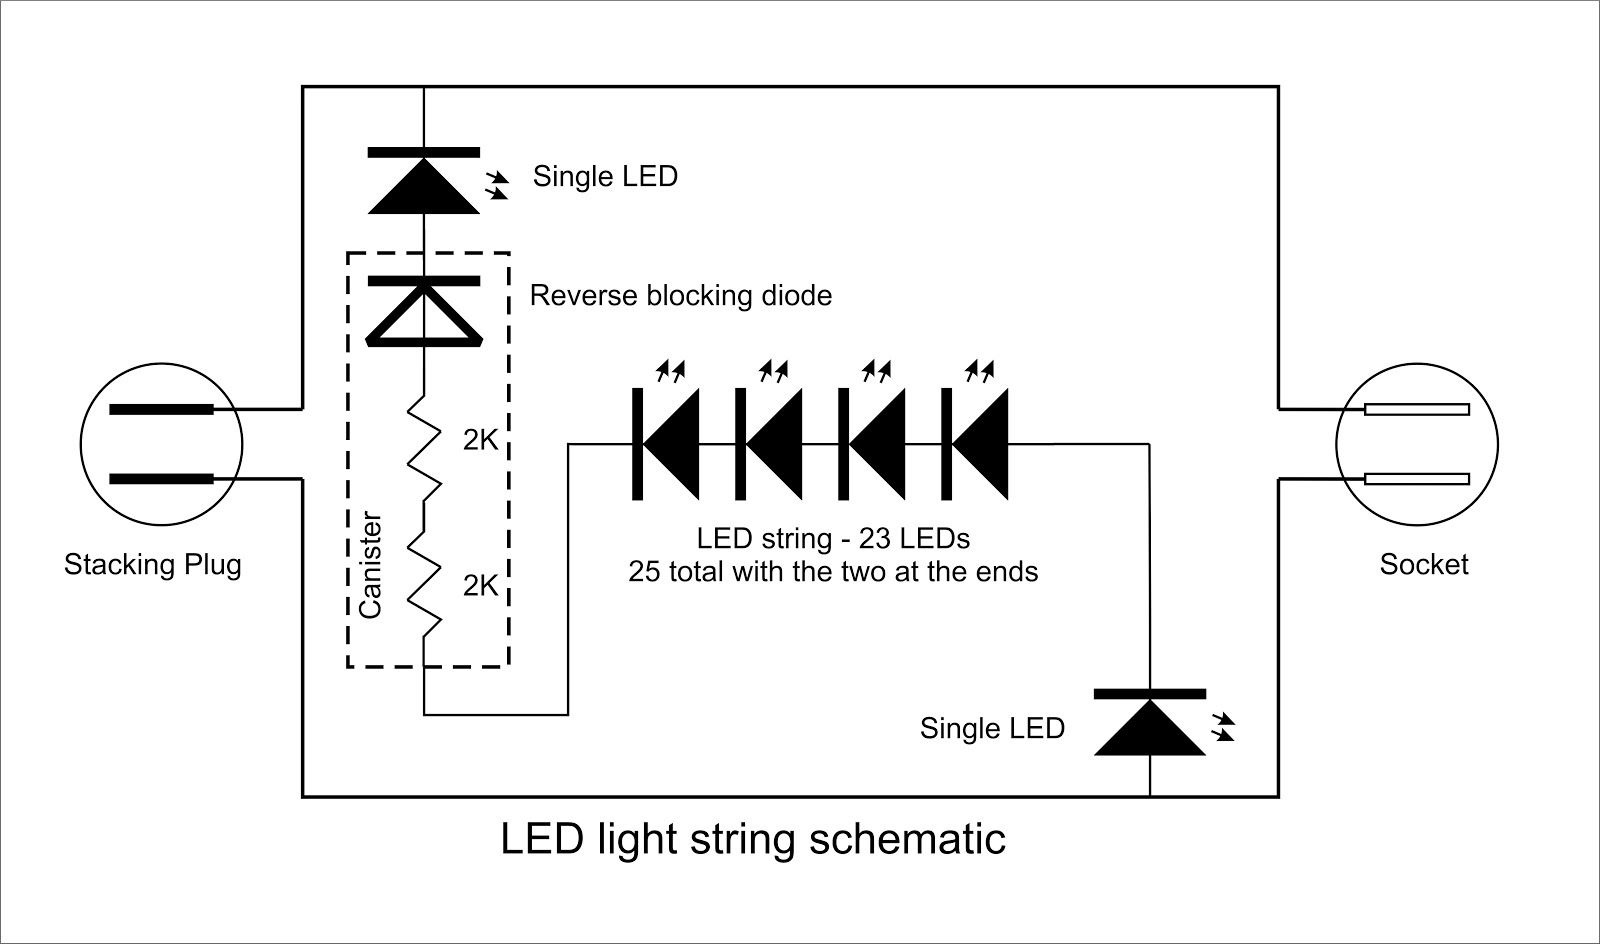 Led Rope Wiring Diagram Block And Schematic Diagrams Samba Georgesworkshop Fixing String Lights Rh Blogspot Com Lamp Connection